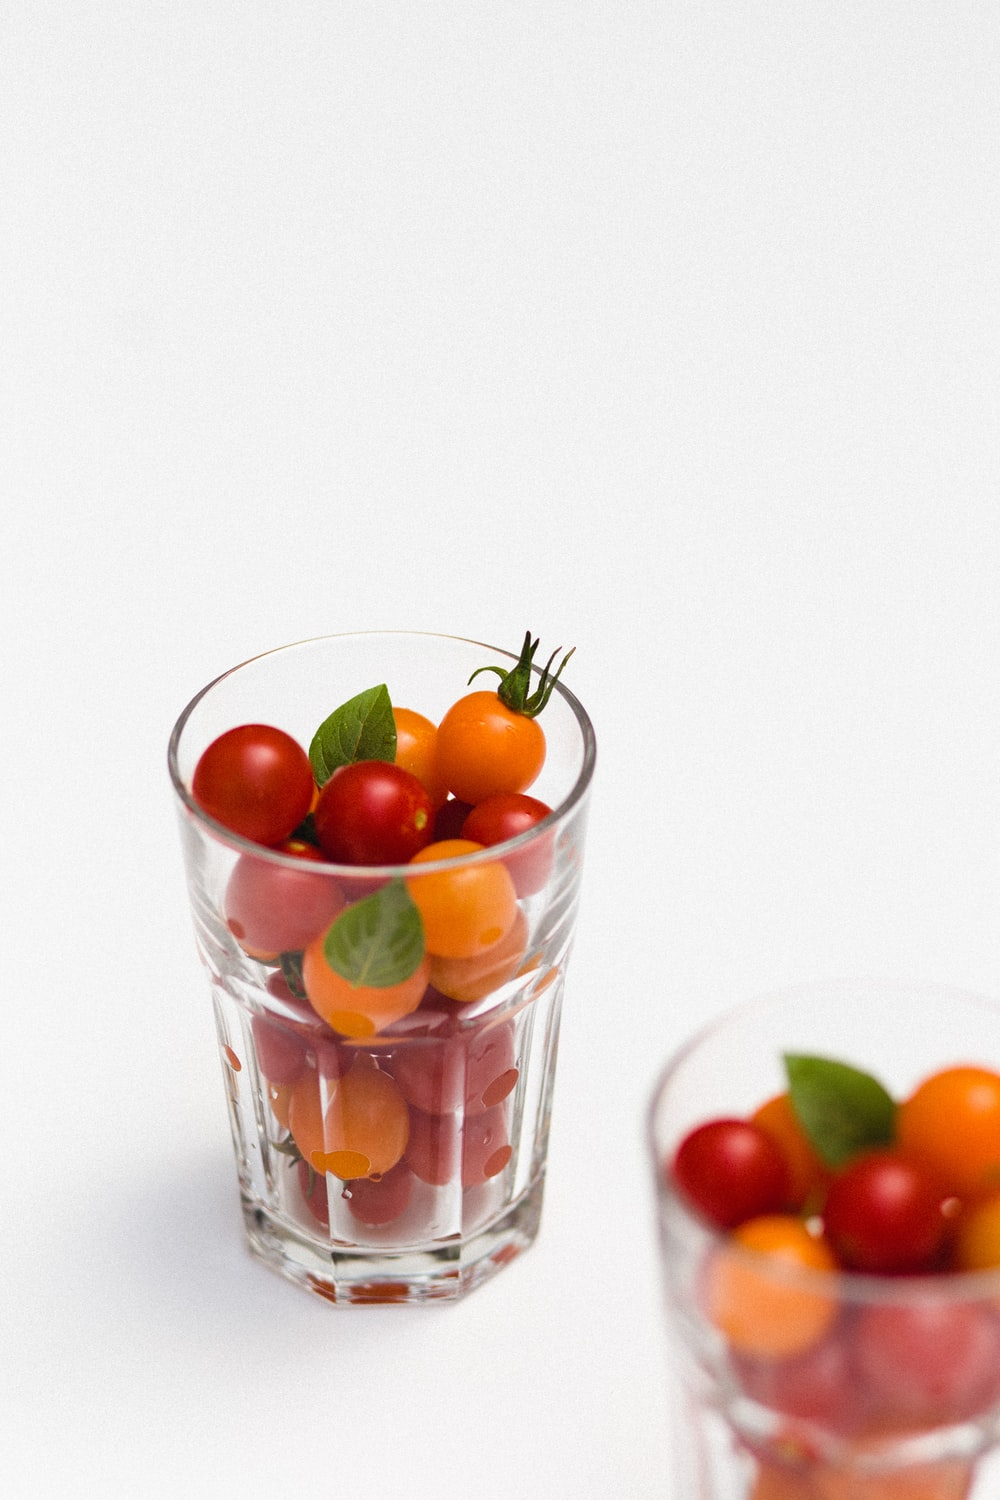 red and orange fruits in clear rock glass